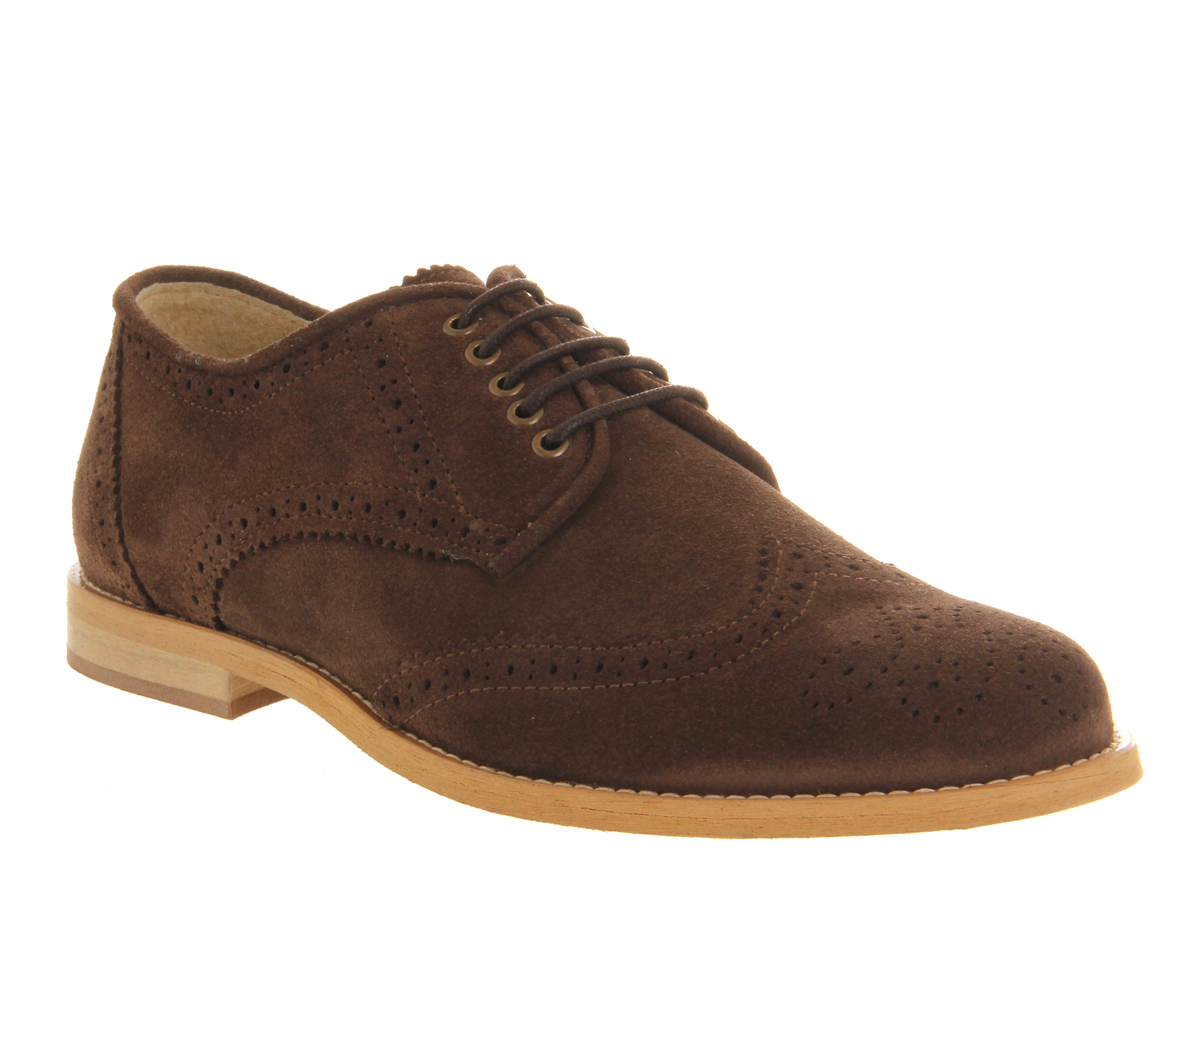 Many men often see purchasing suede shoes as being a particularly risky decision. Although suede can look extremely stylish, it's not always practical for every occasion. While this is a valid concern to have, you really should have a bit of suede in your footwear arsenal.